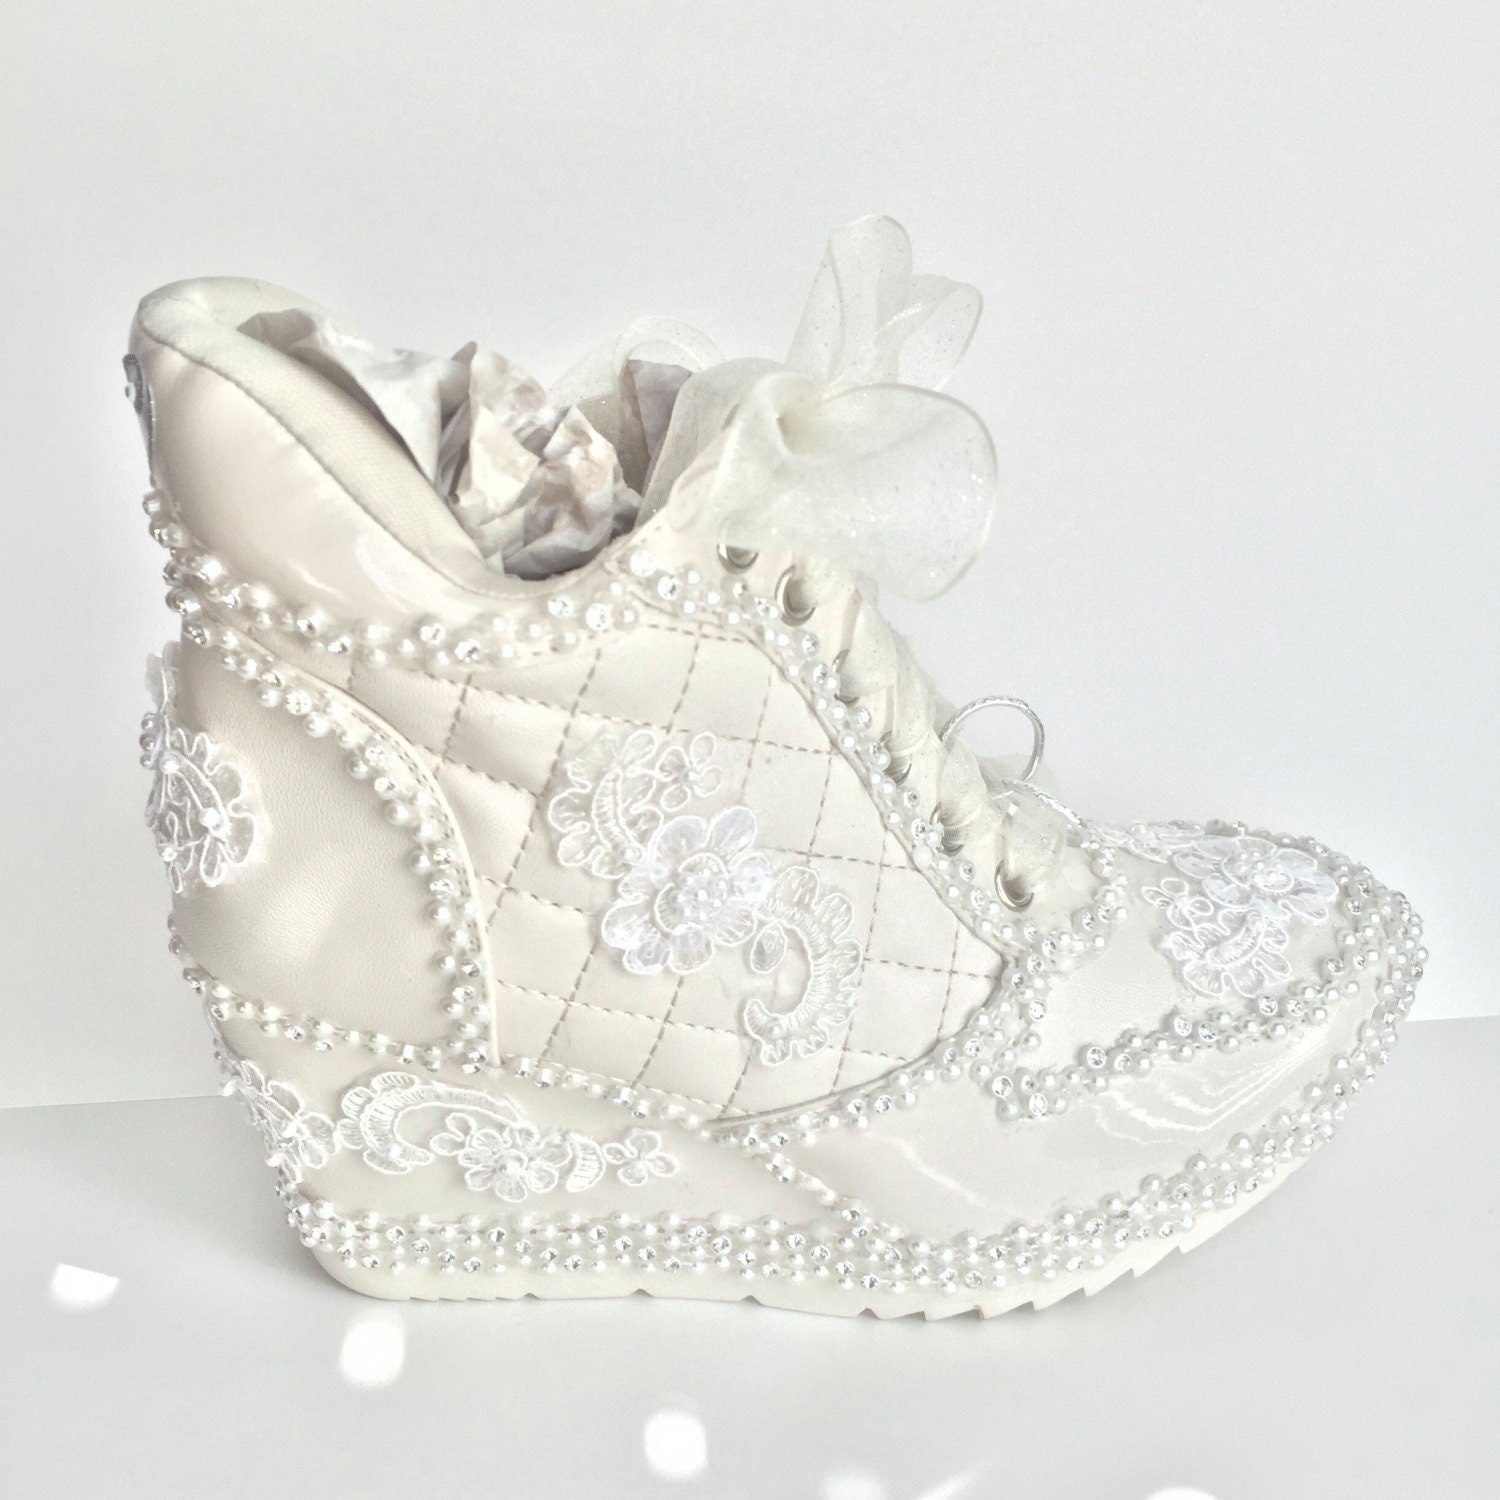 Ivory Wedding Shoes Sneakers Wedge Heeled Bridal Tennis In Champagne